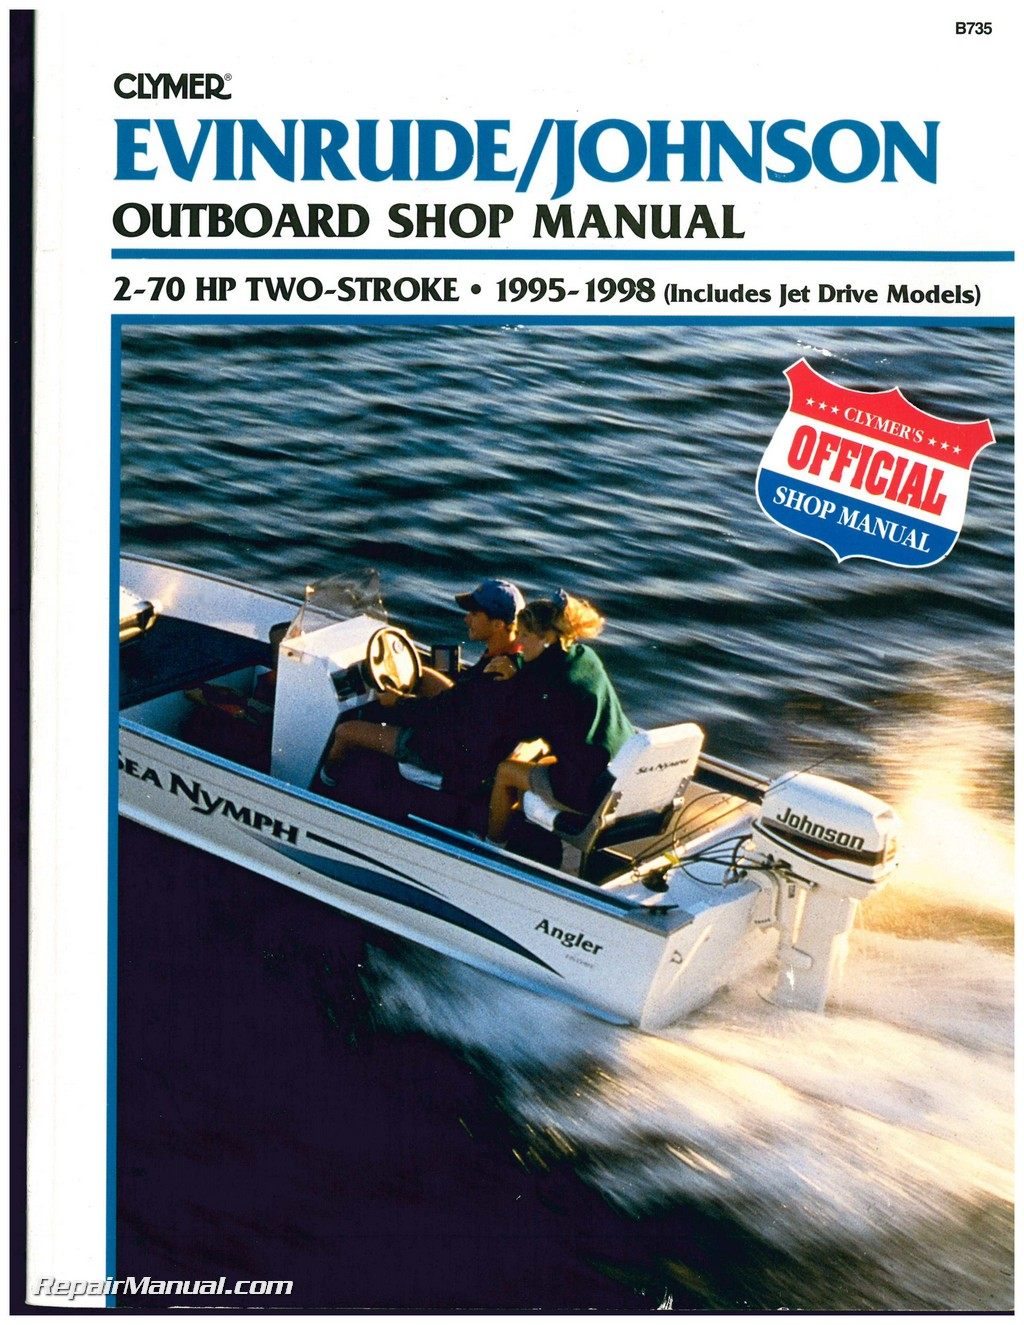 Boat Wiring Diagrams 96 Johnson 60 Hp Motor Diagram Libraries 70 Yamaha 2 Stroke Evinrude Outboard Shop Manual 1995evinrude